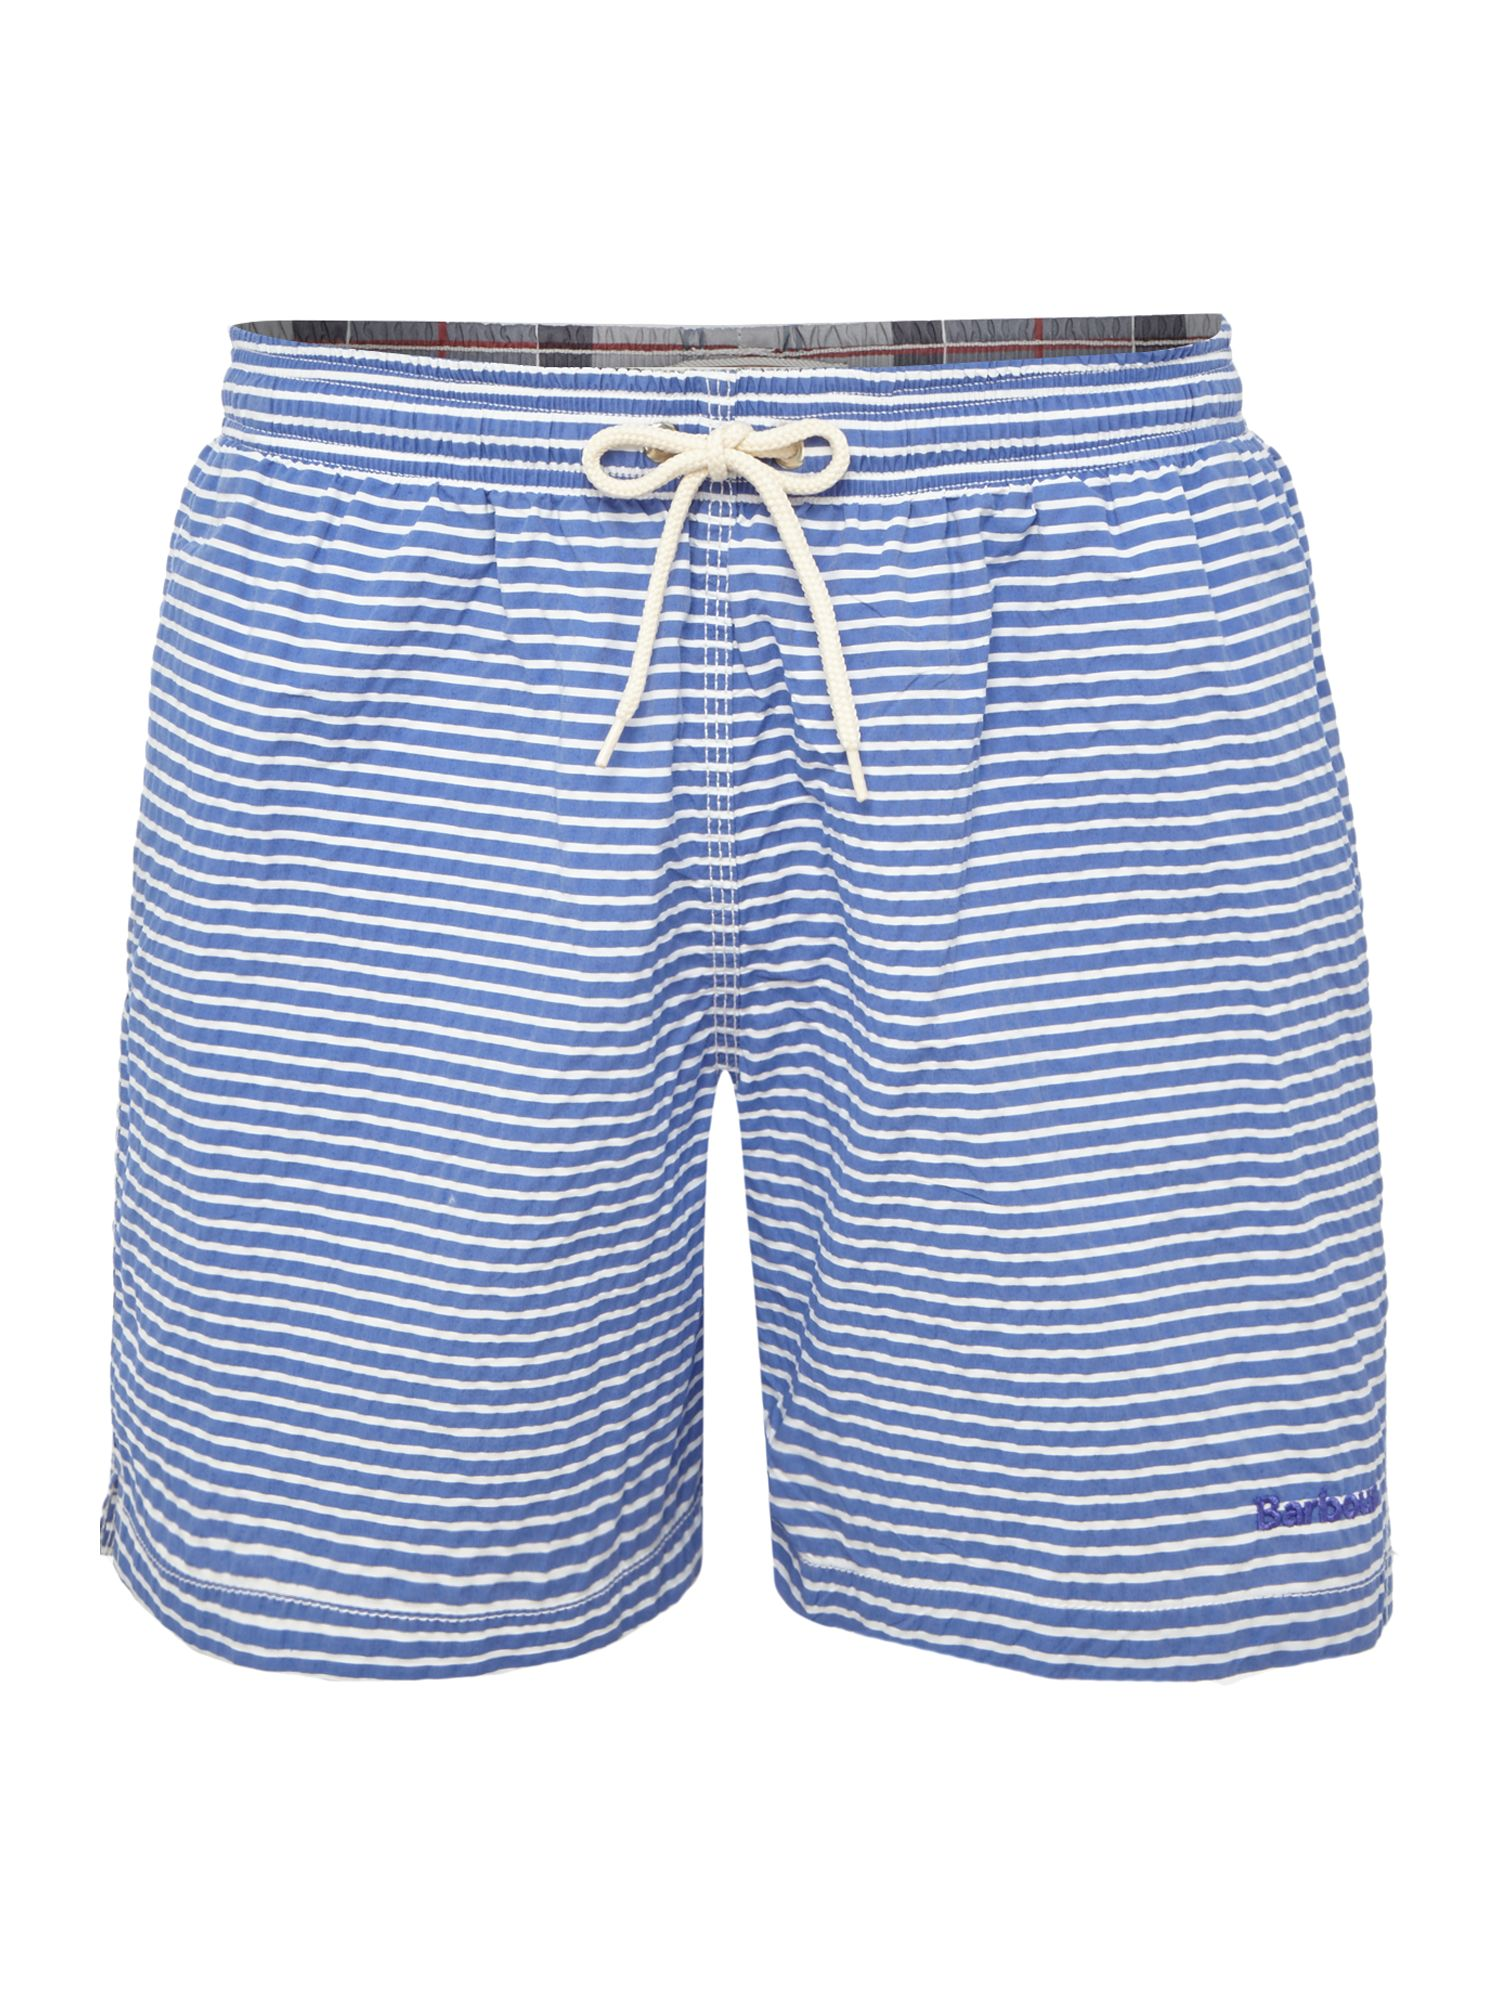 Men's Barbour Stripe Logo Swim Shorts, Blue